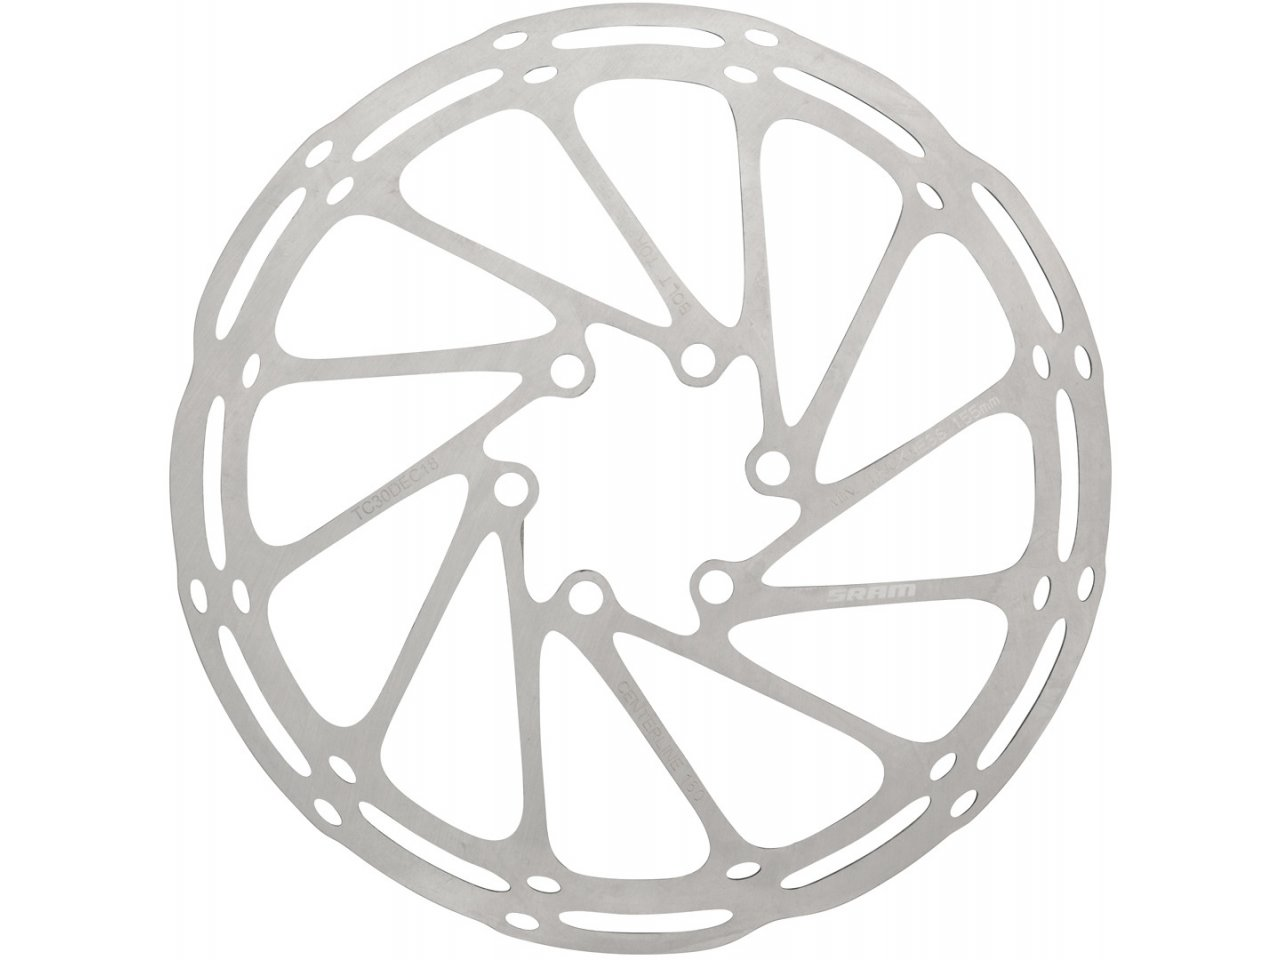 140mm~Bicycle Cycling MTB Mountain Bike Stainless Steel Brake Disc Rotor 6 Bolts